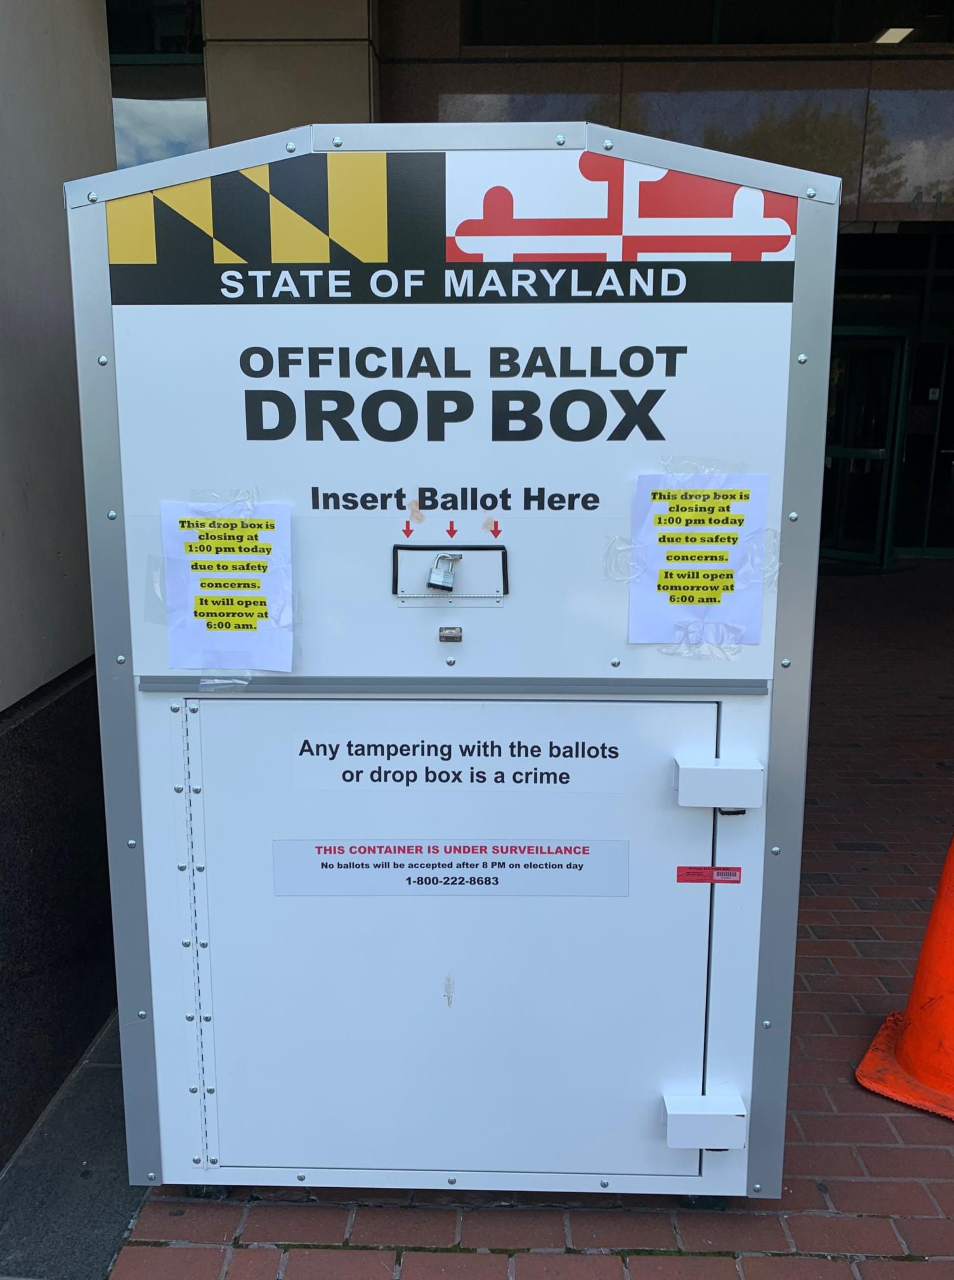 Picture of a Maryland official ballot drop box. It is a white, rectangular shaped box with the State of Maryland name and flag on it and it says Official Ballot Drop Box and insert Ballot Here. There is a small opening in the middle with three red arrows.